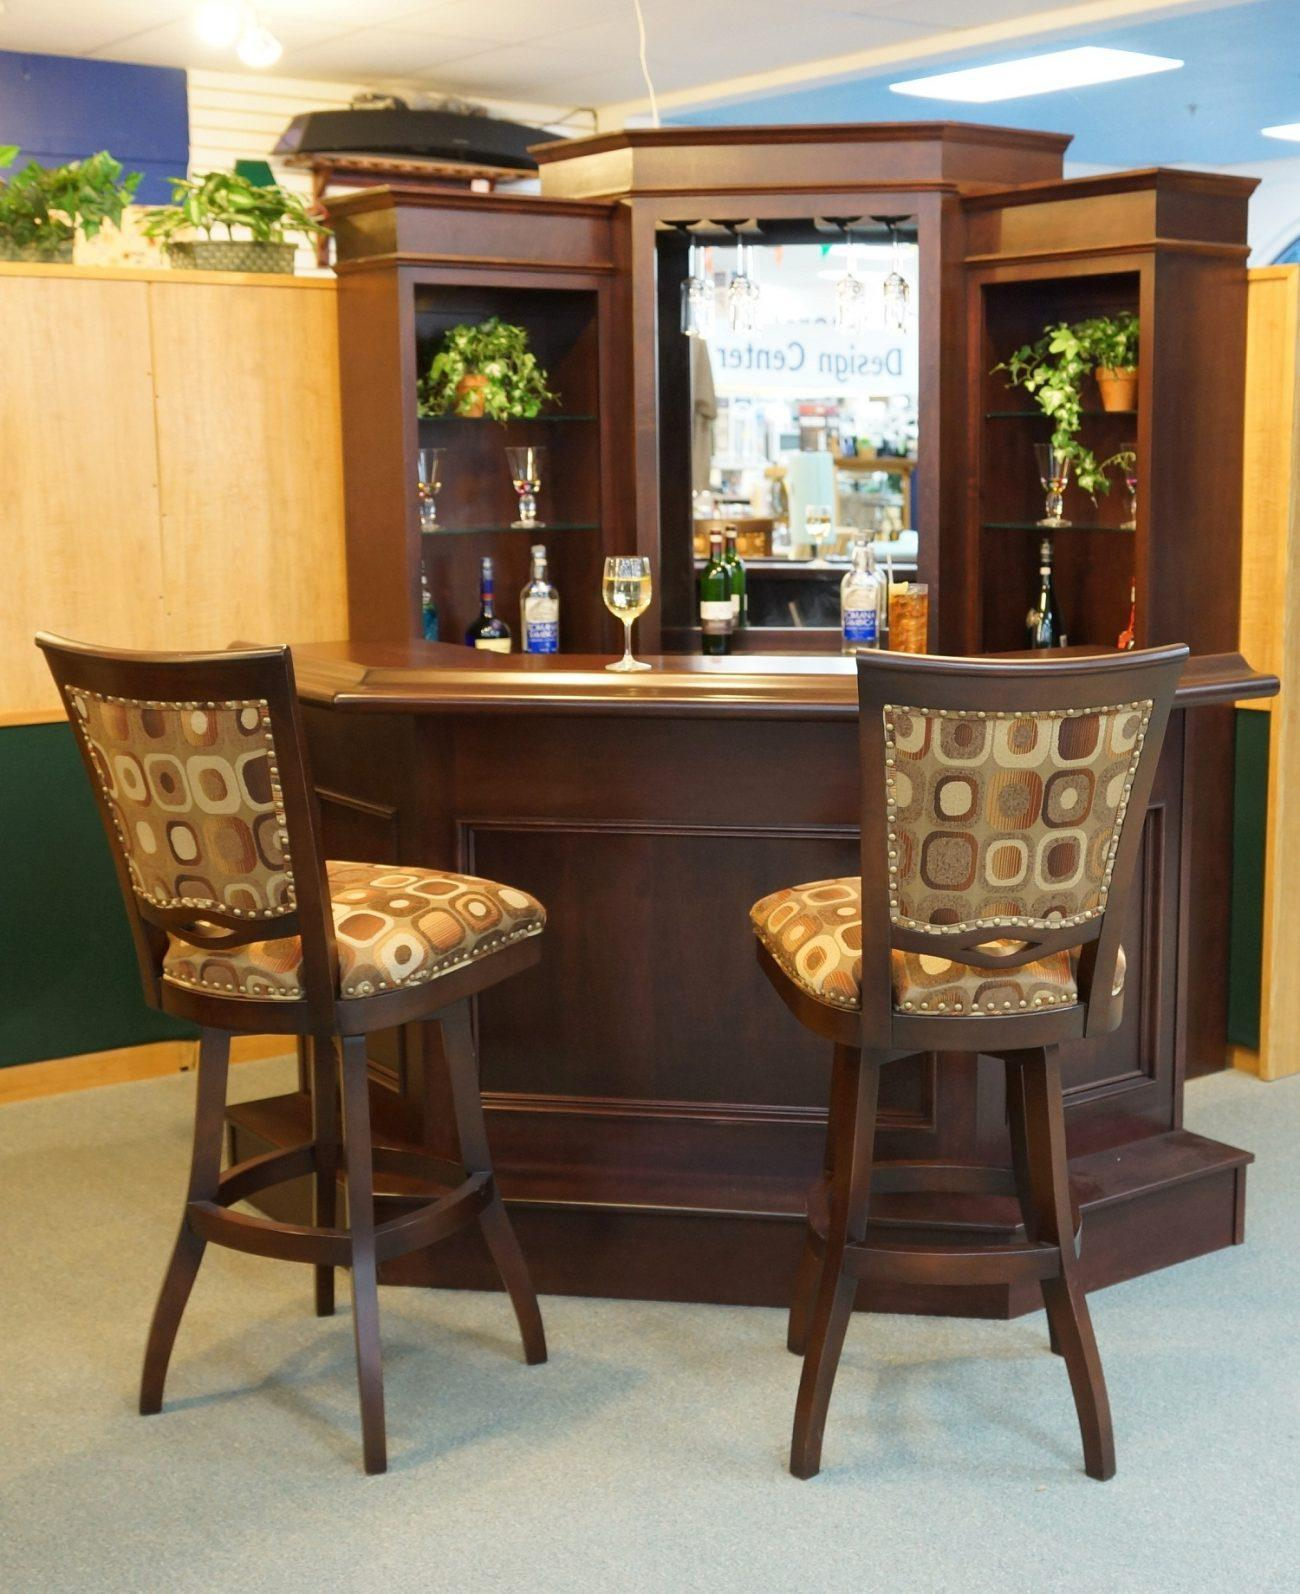 4 Ideas For A Home Bar On A Budget Home Tips